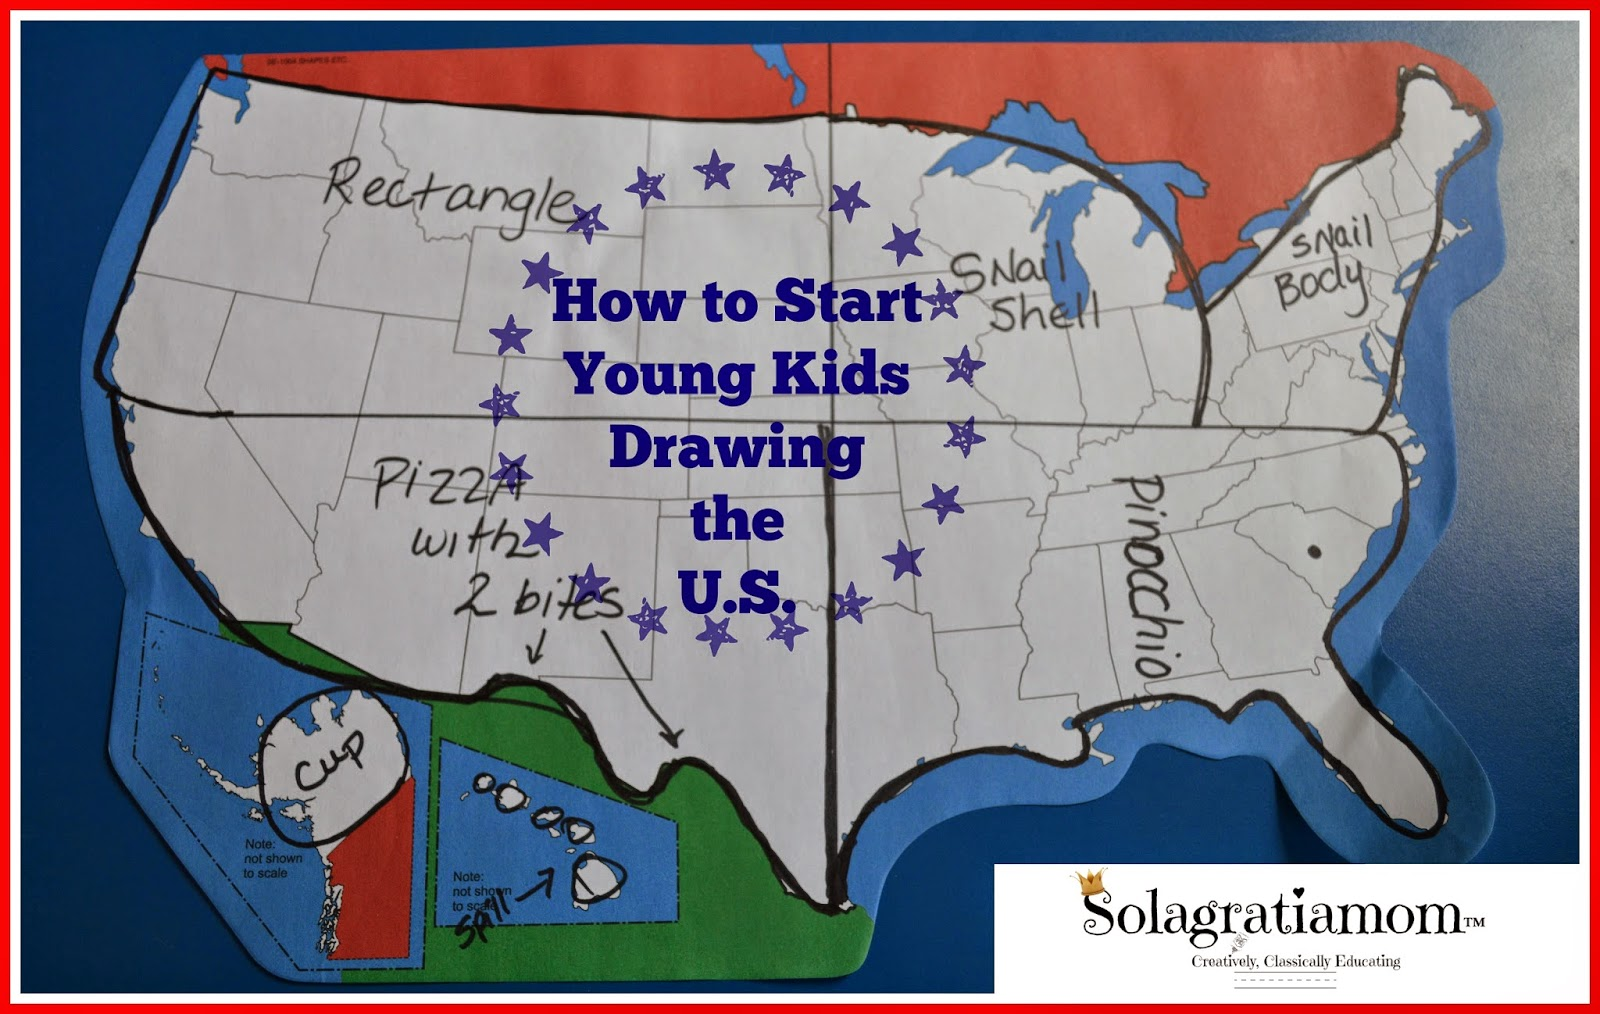 solagratiamom how to start young kids drawing the u.s.